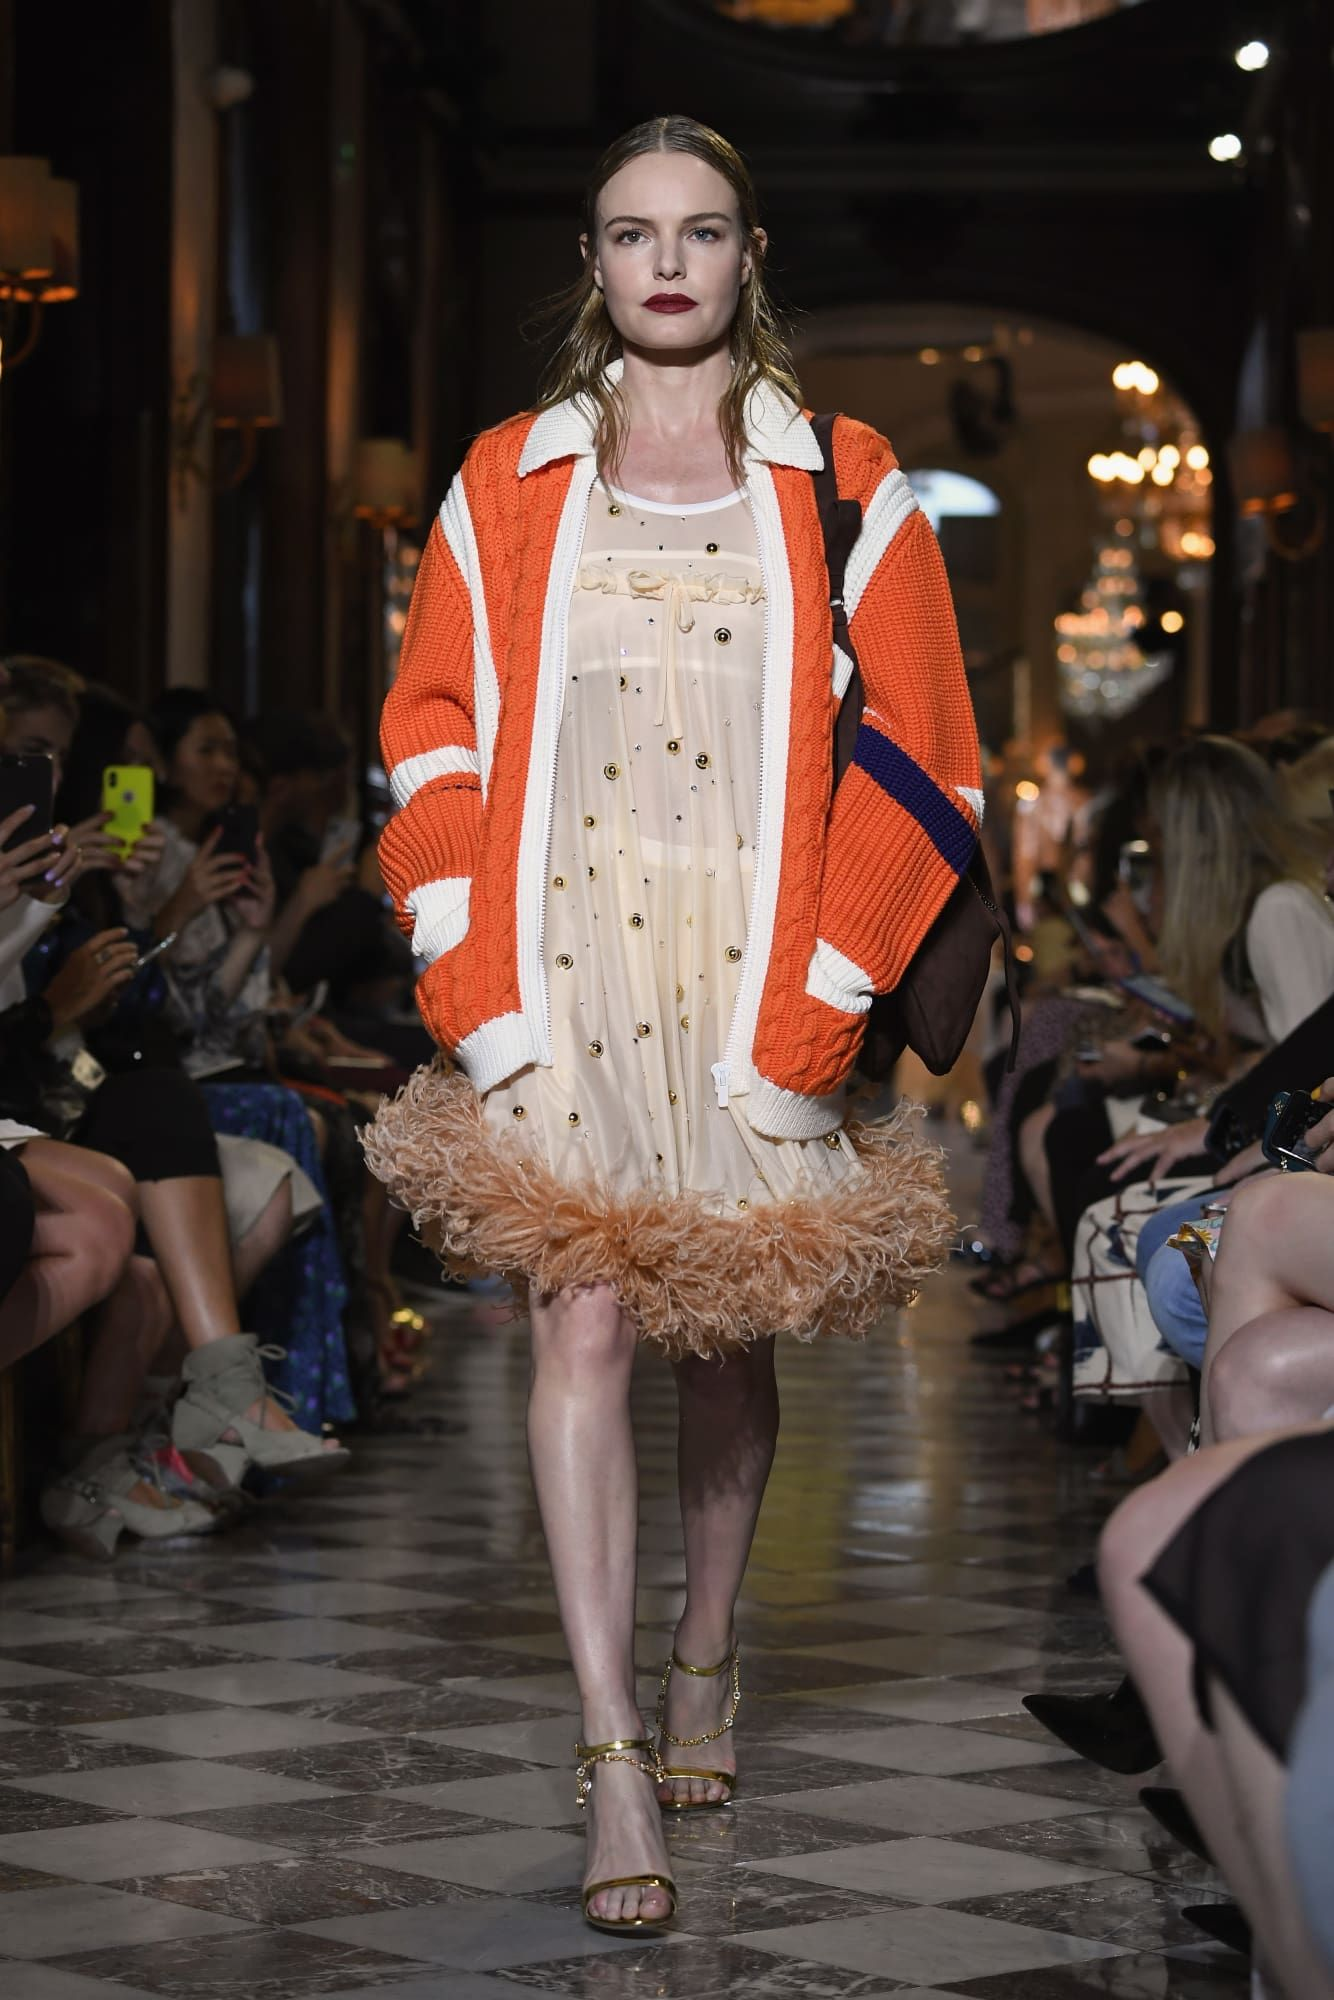 c88cac18a33 Miuccia Prada Tapped Her Famous Friends to Model for Miu Miu Cruise ...